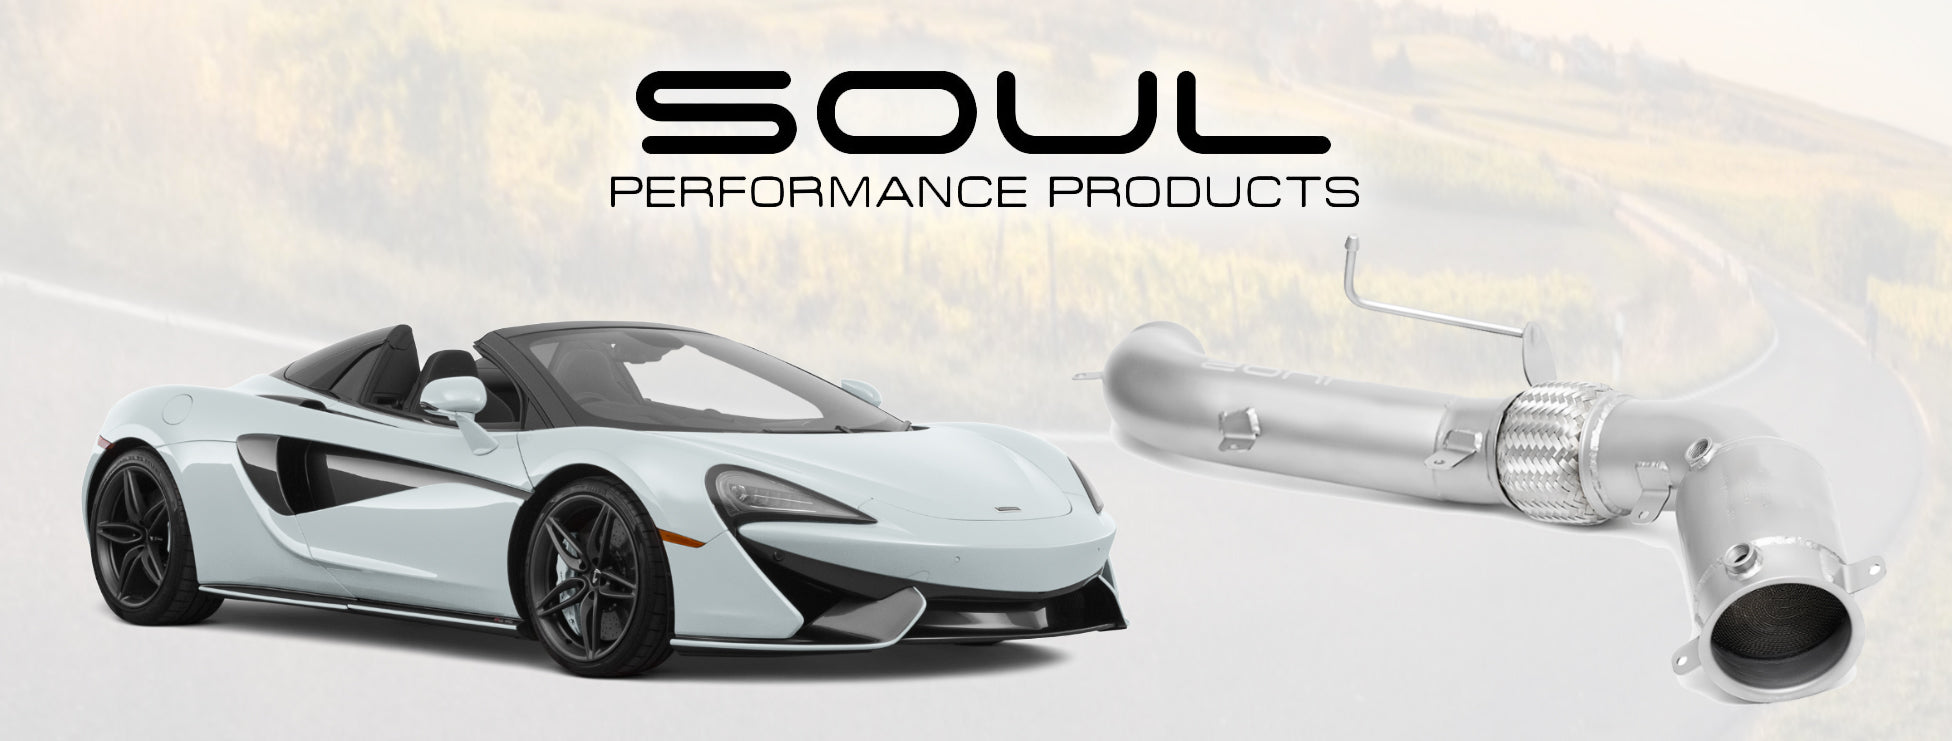 Soul Performance Products Exhausts and Aftermarket Exhaust Systems for Exotic Super Cars